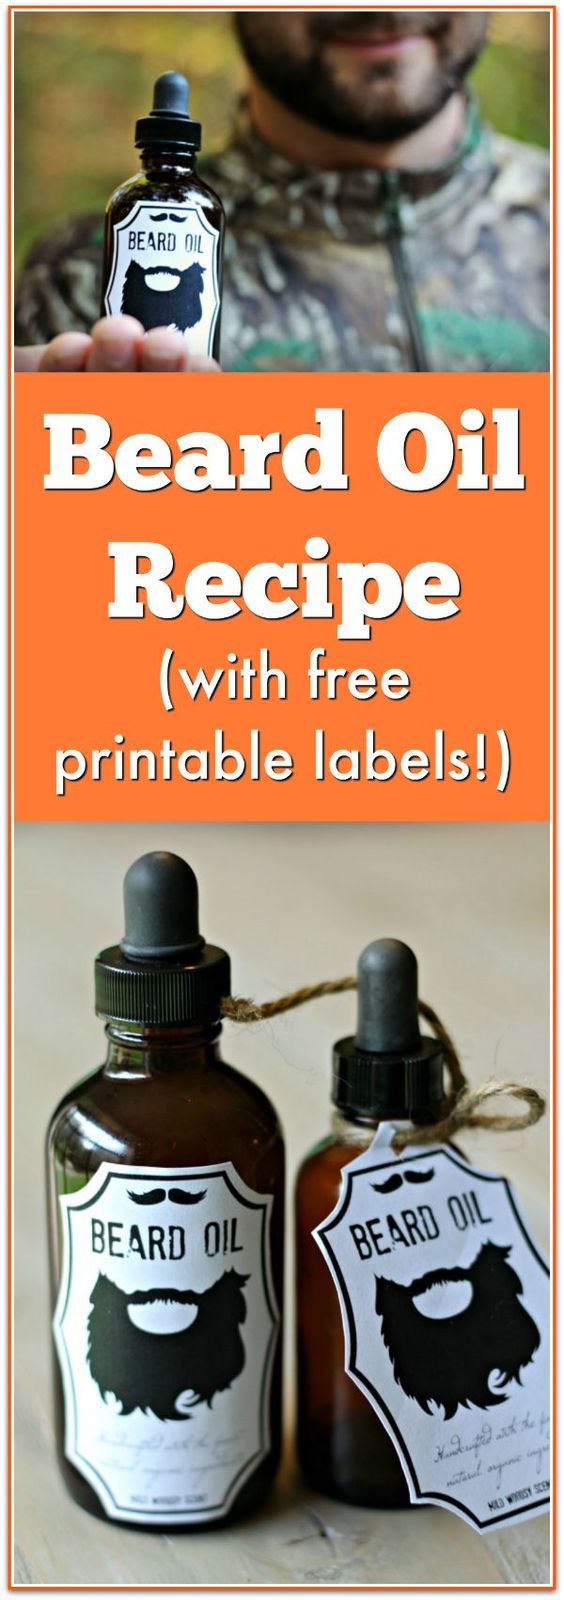 beard oil recipe with free printable labels